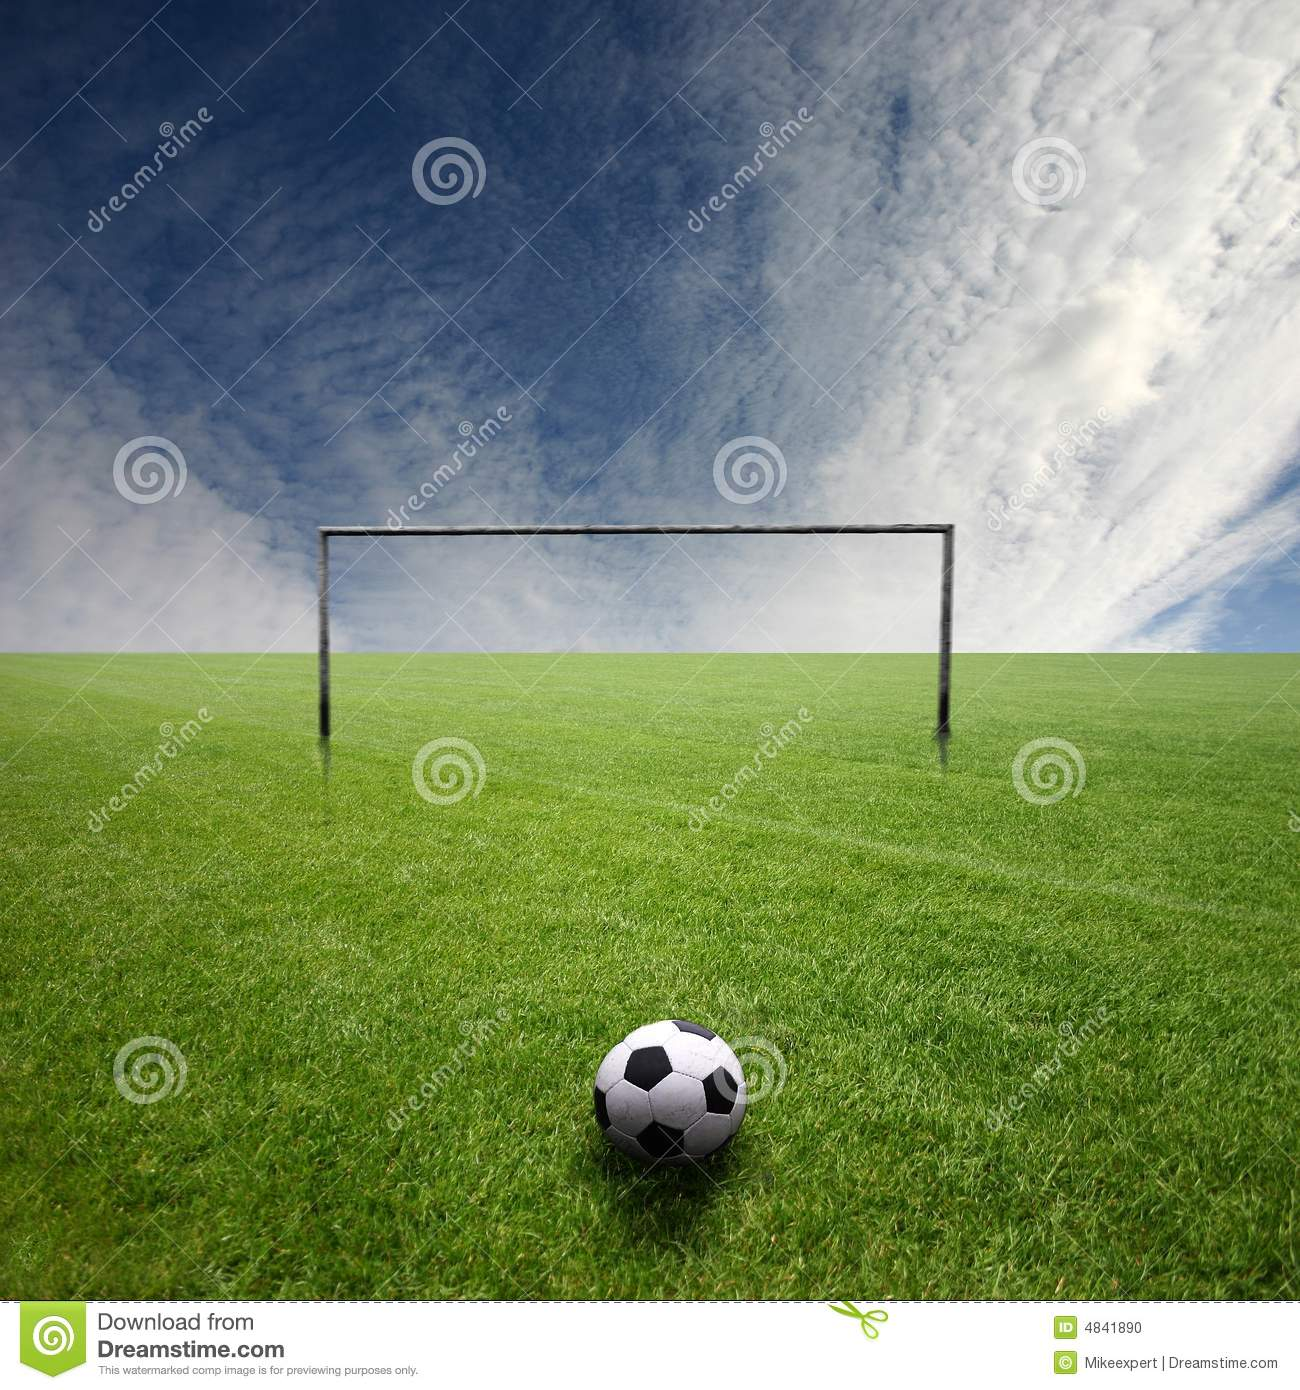 Football pitch with ball